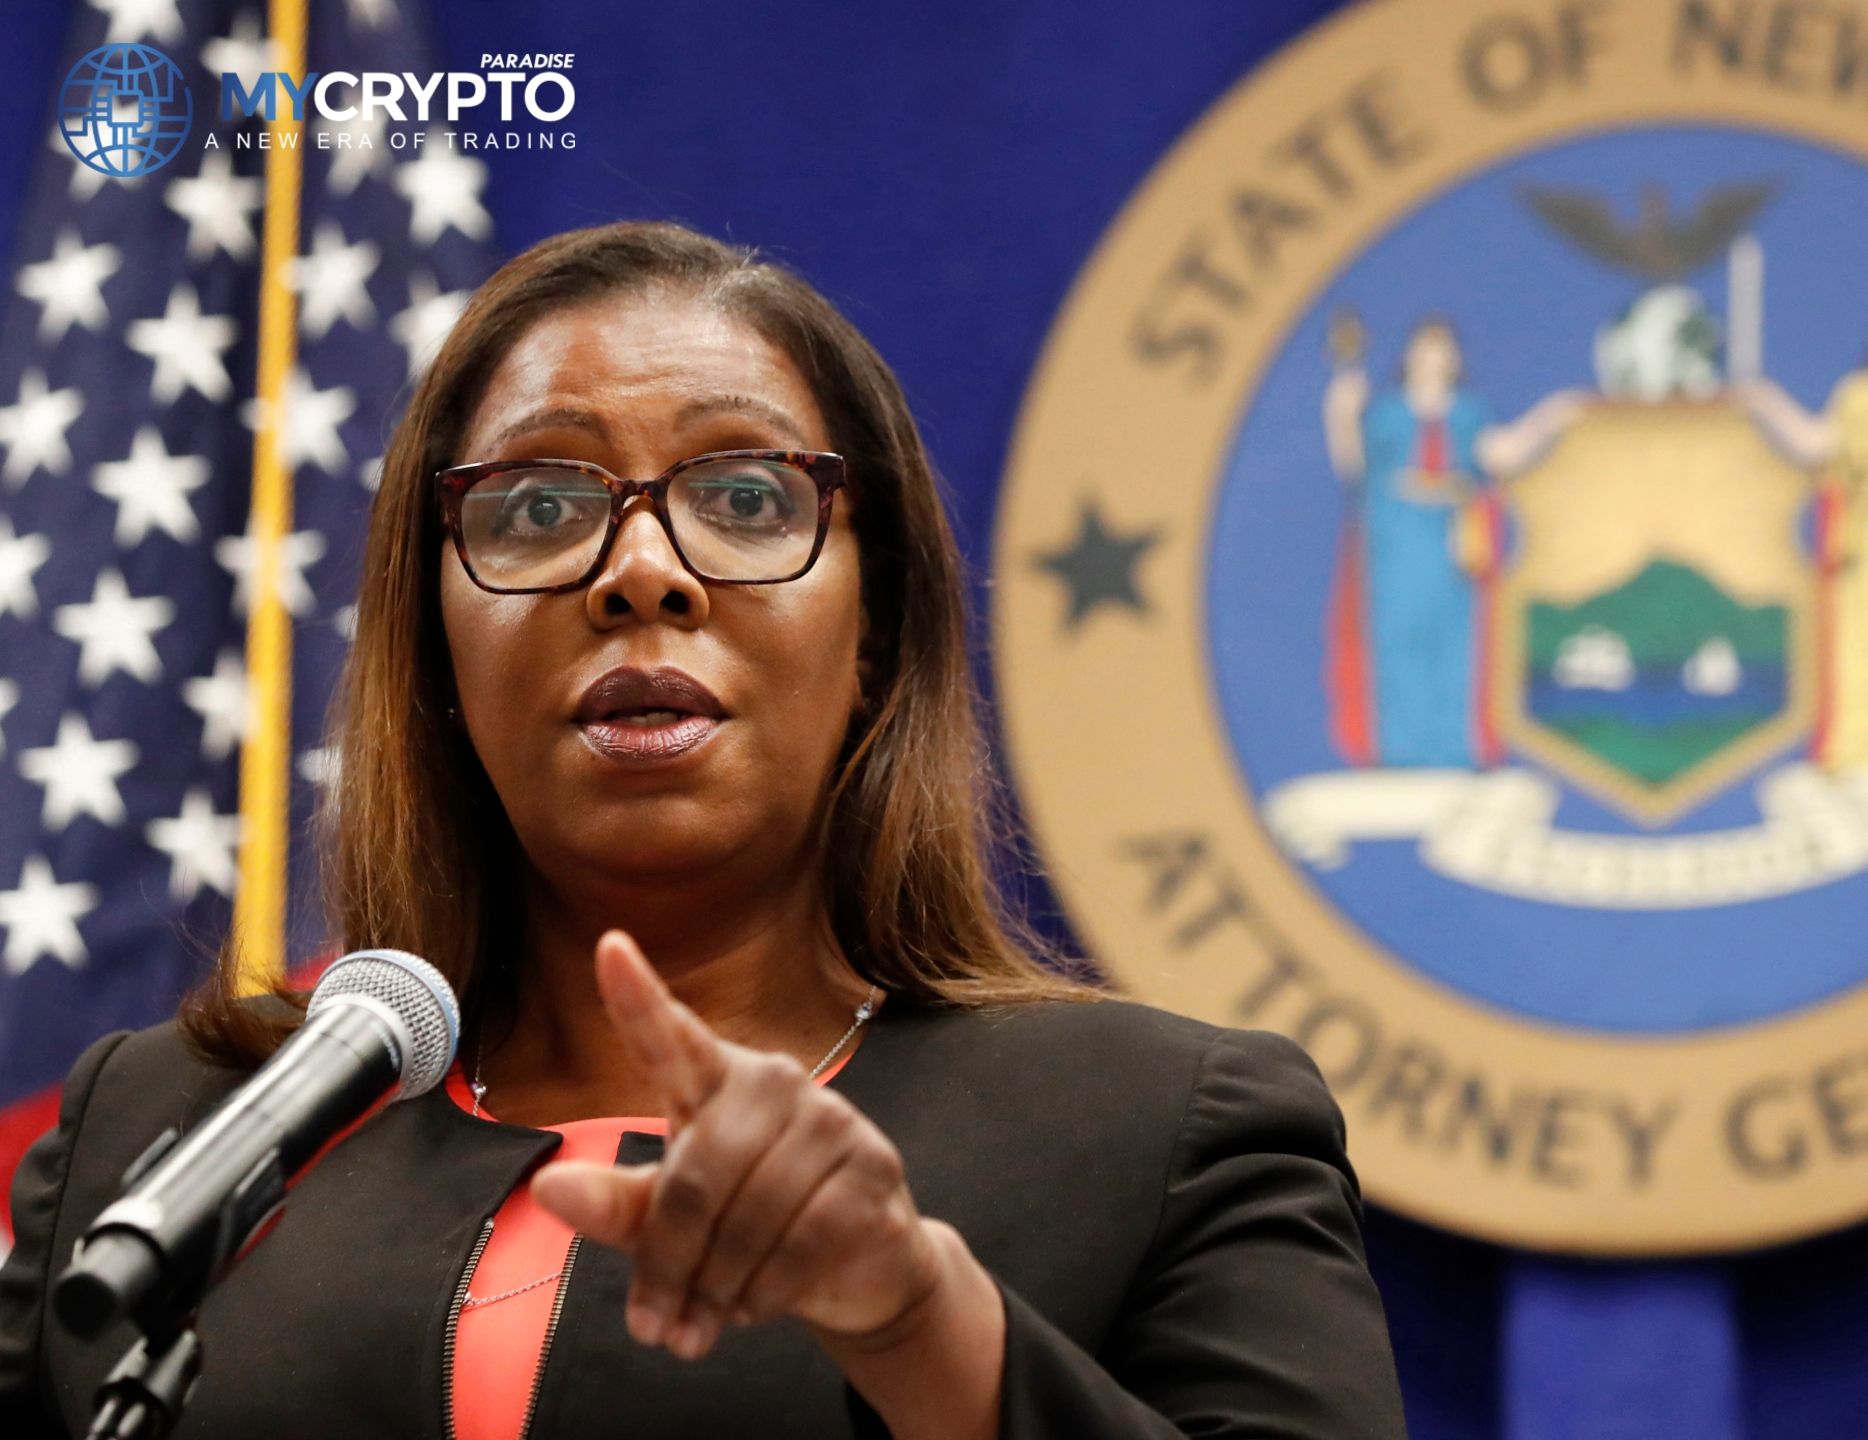 NYAG Letitia James Hits Coinseed With A Restraining Order Suit